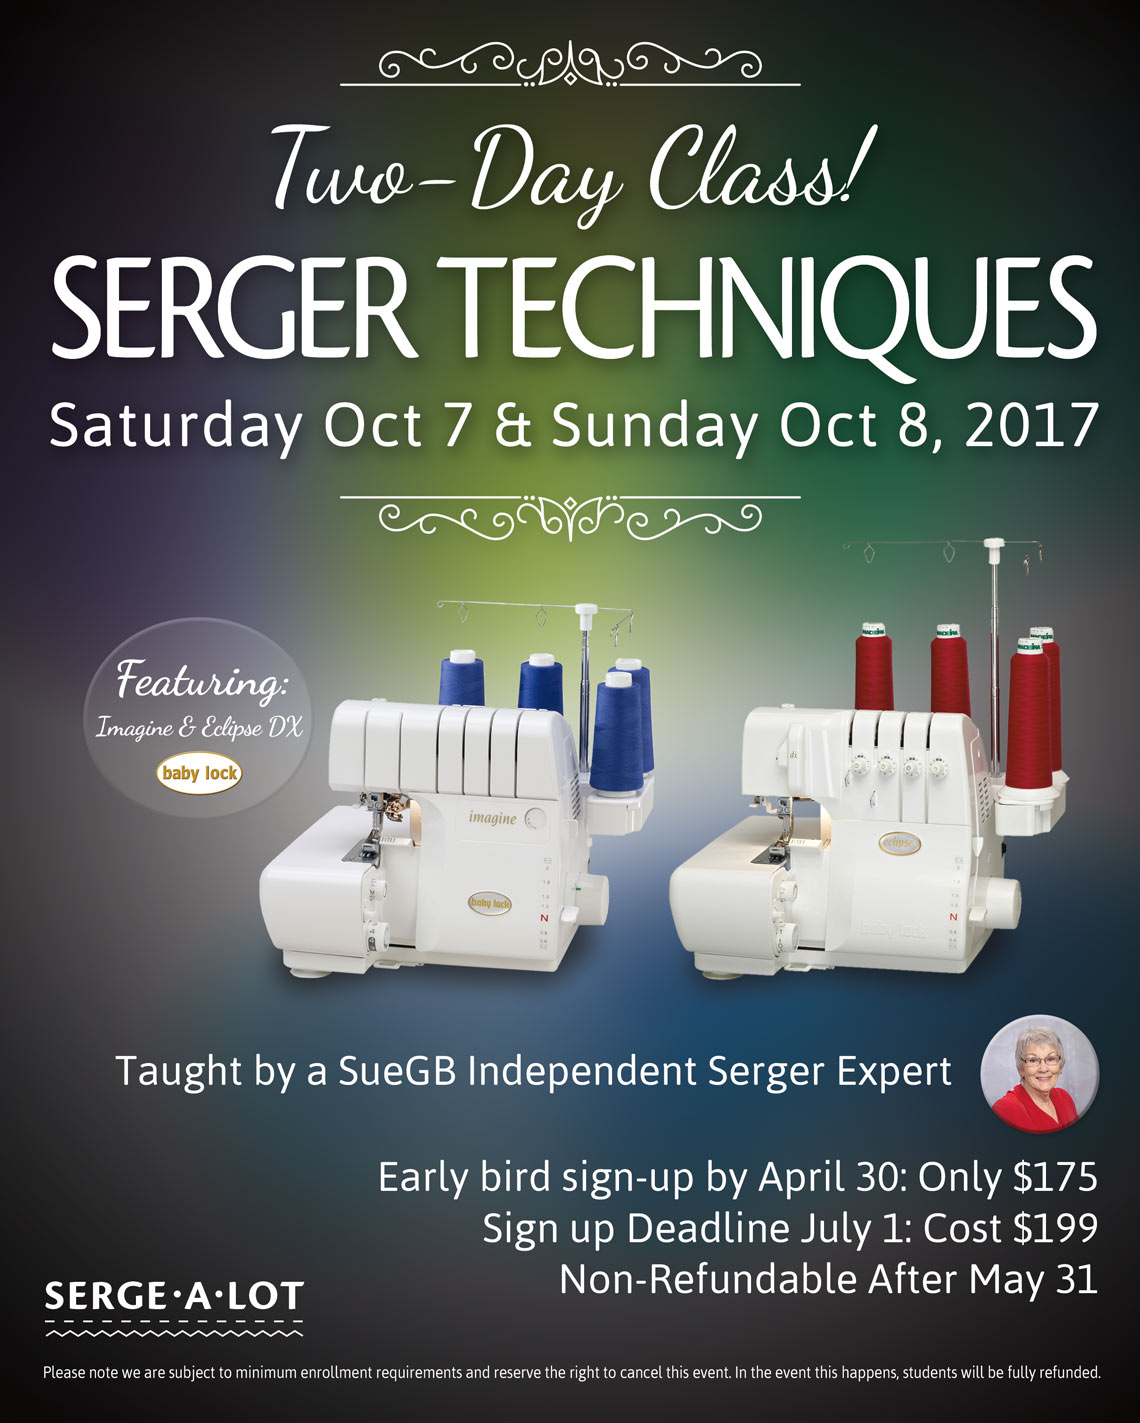 Sergealot Two-Day Serger Event Sue Green Baker Serger Techniques